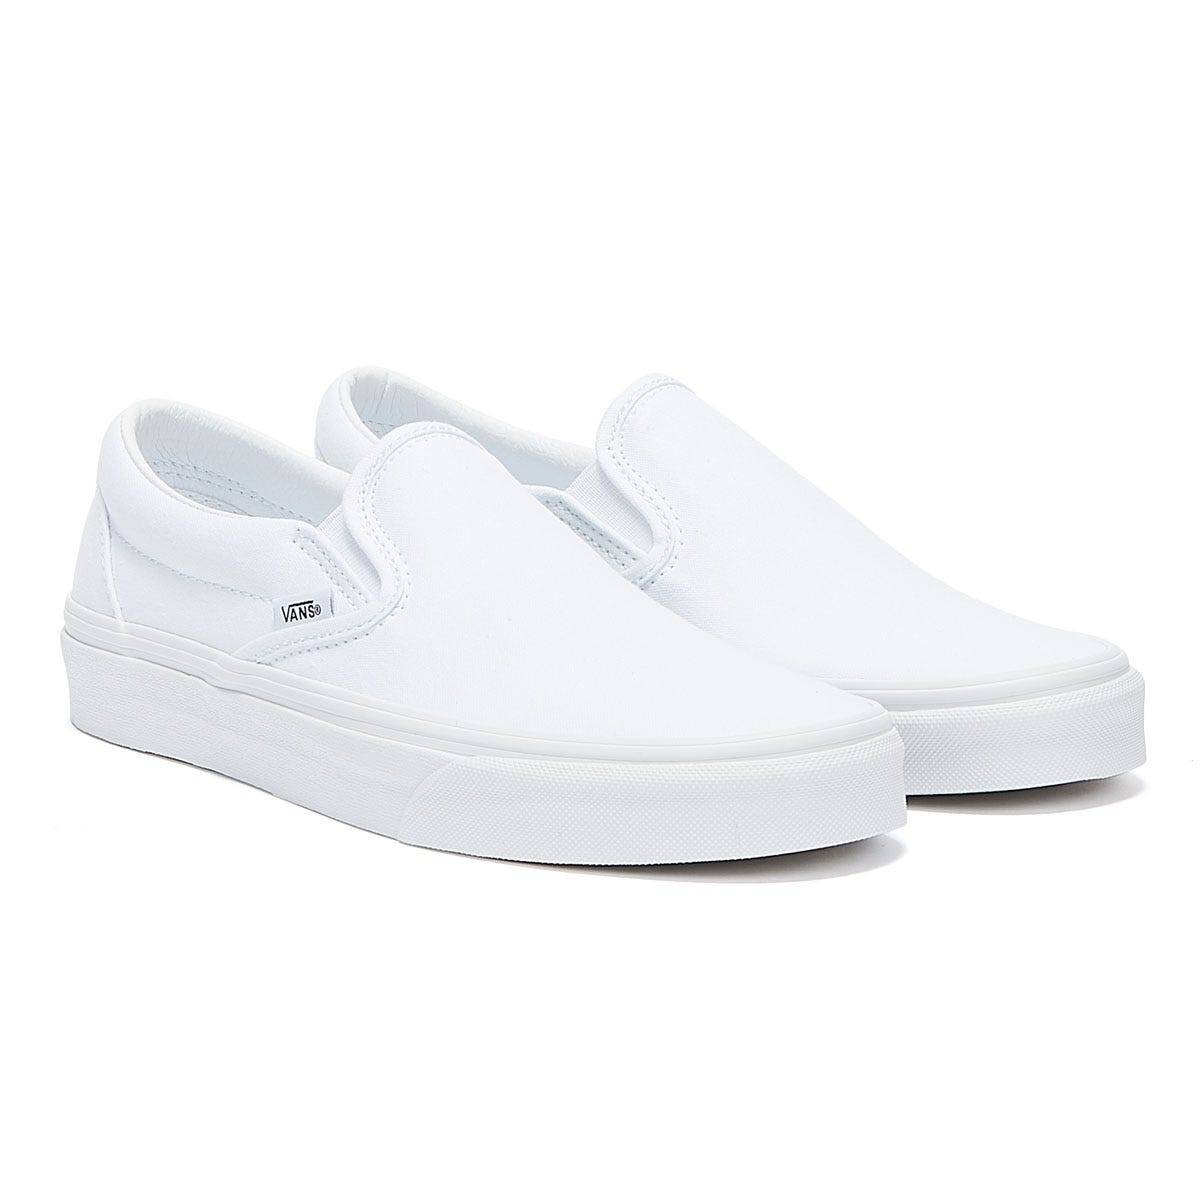 Trainers & Running Shoes Vans Classic Slip on True White Canvas Trainers